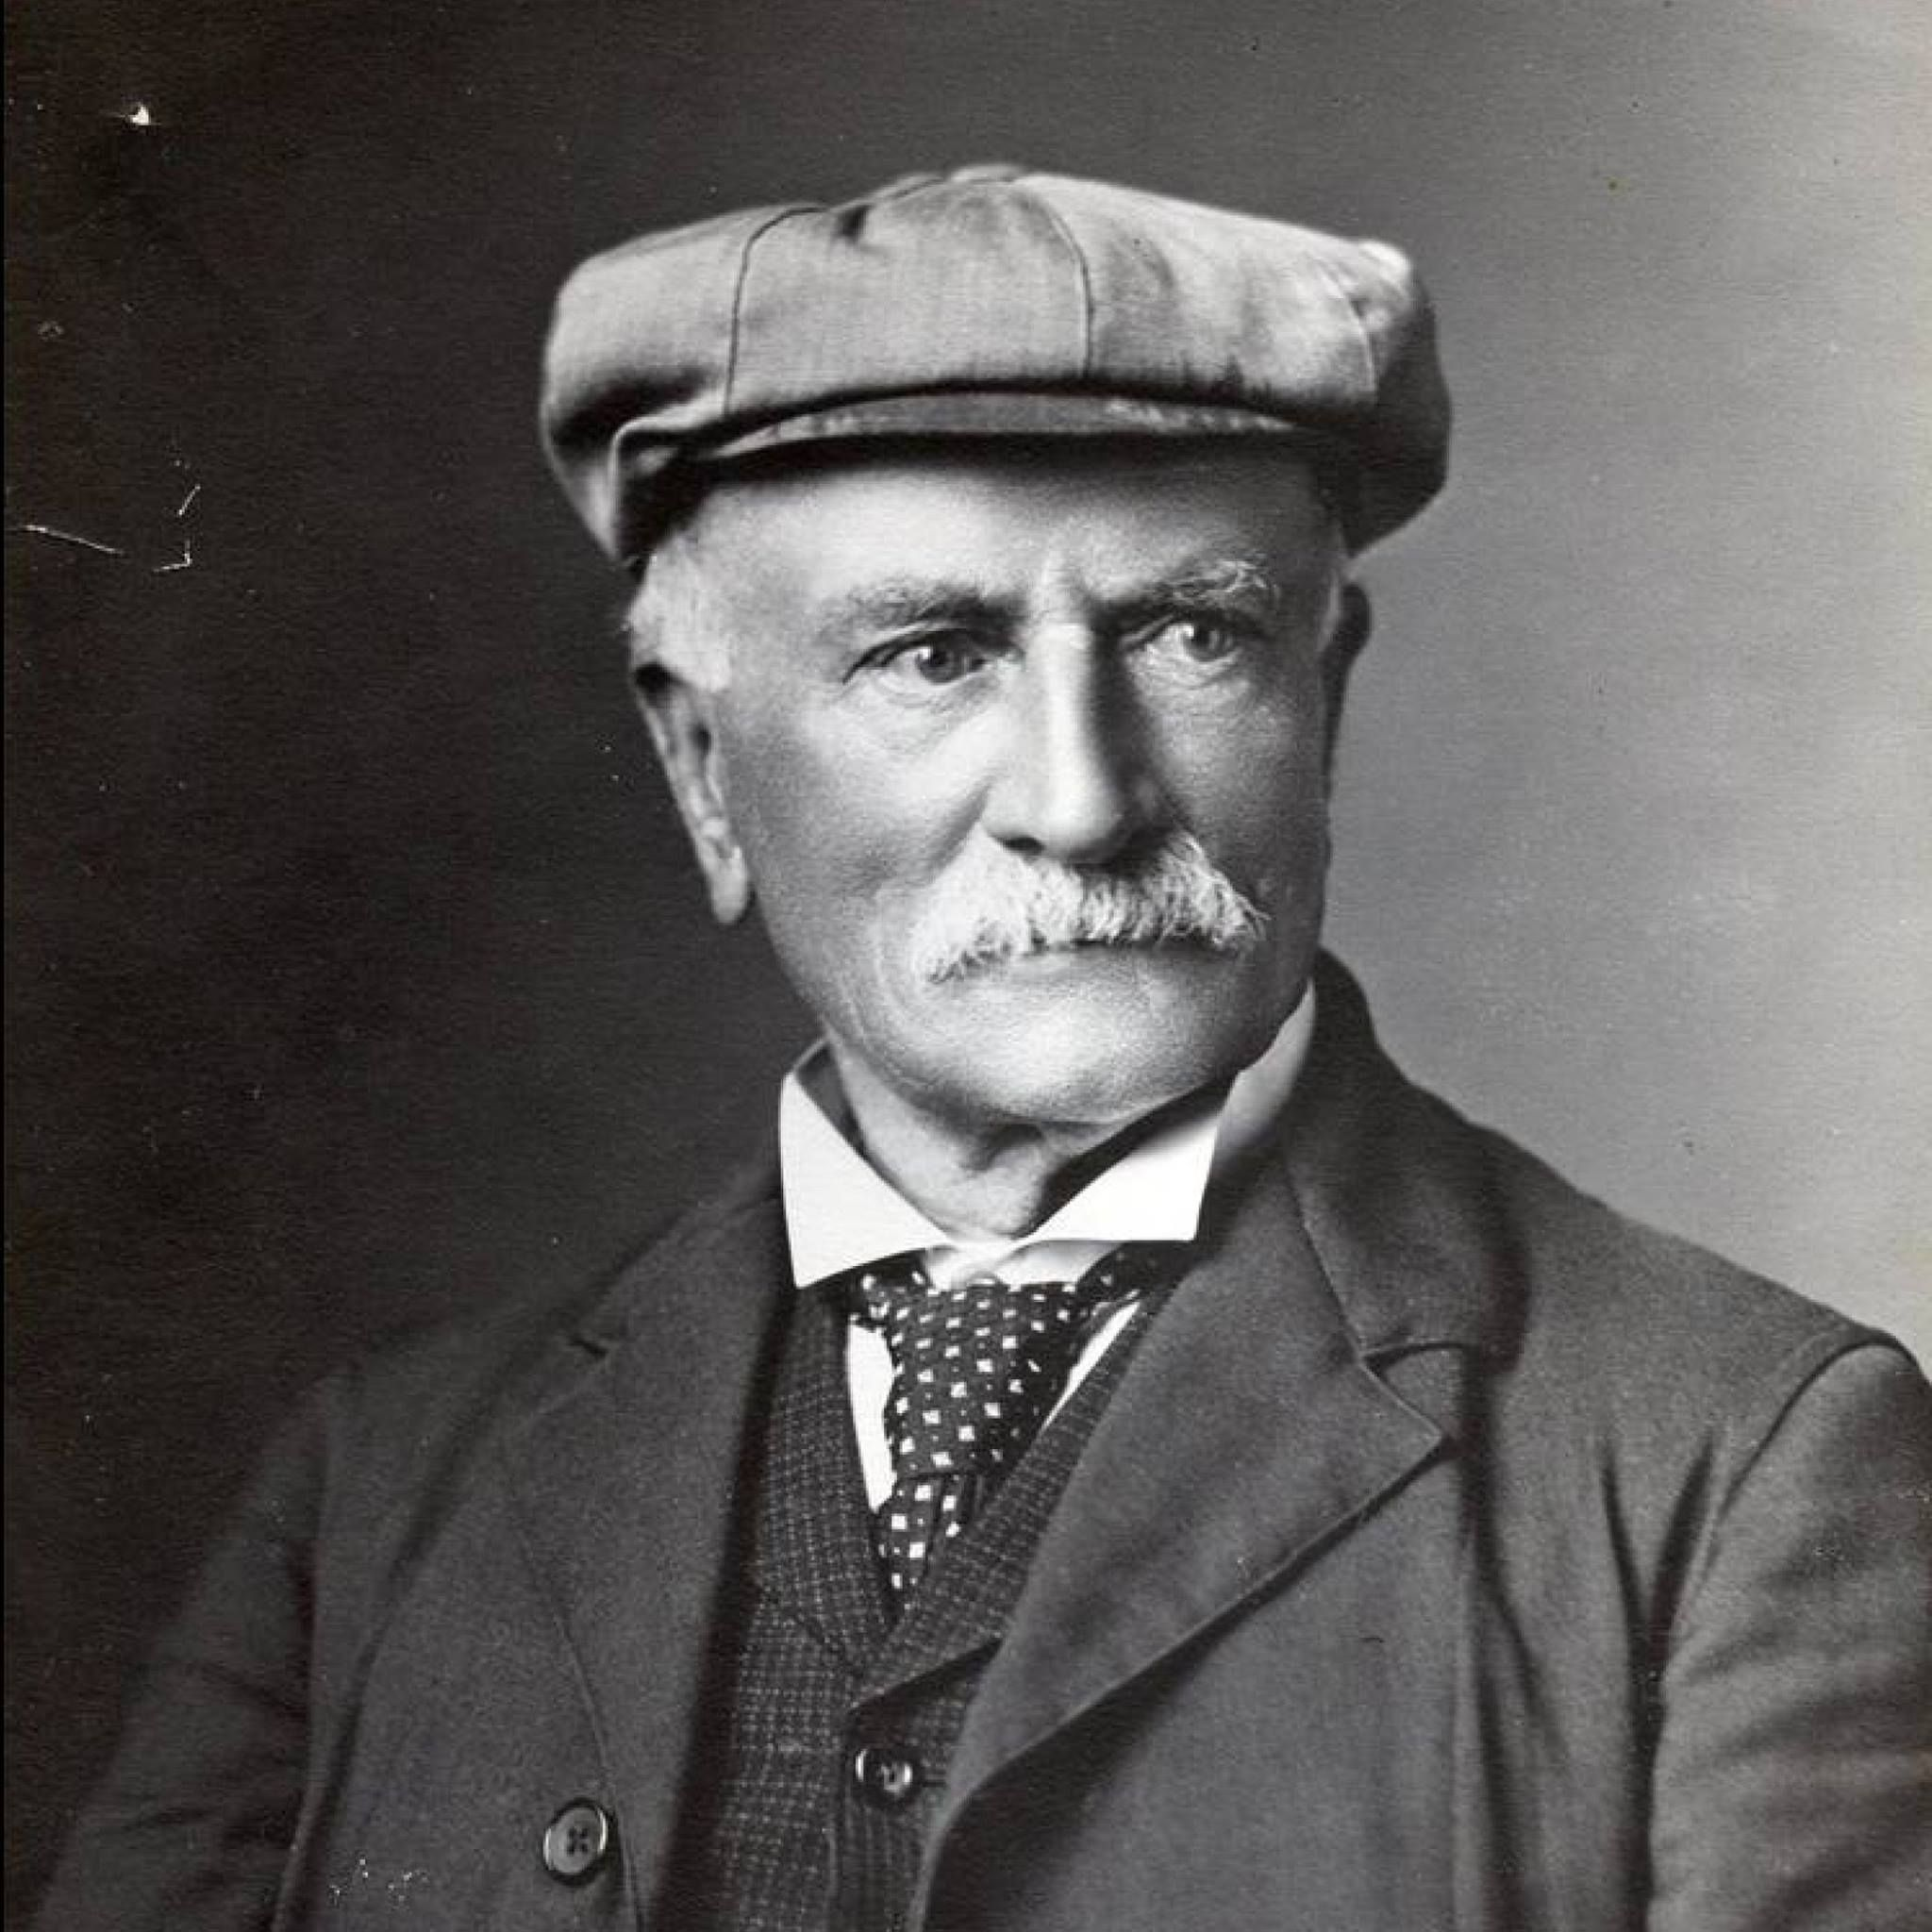 William Worrall Mayo, a graduate of the first Indiana medical school